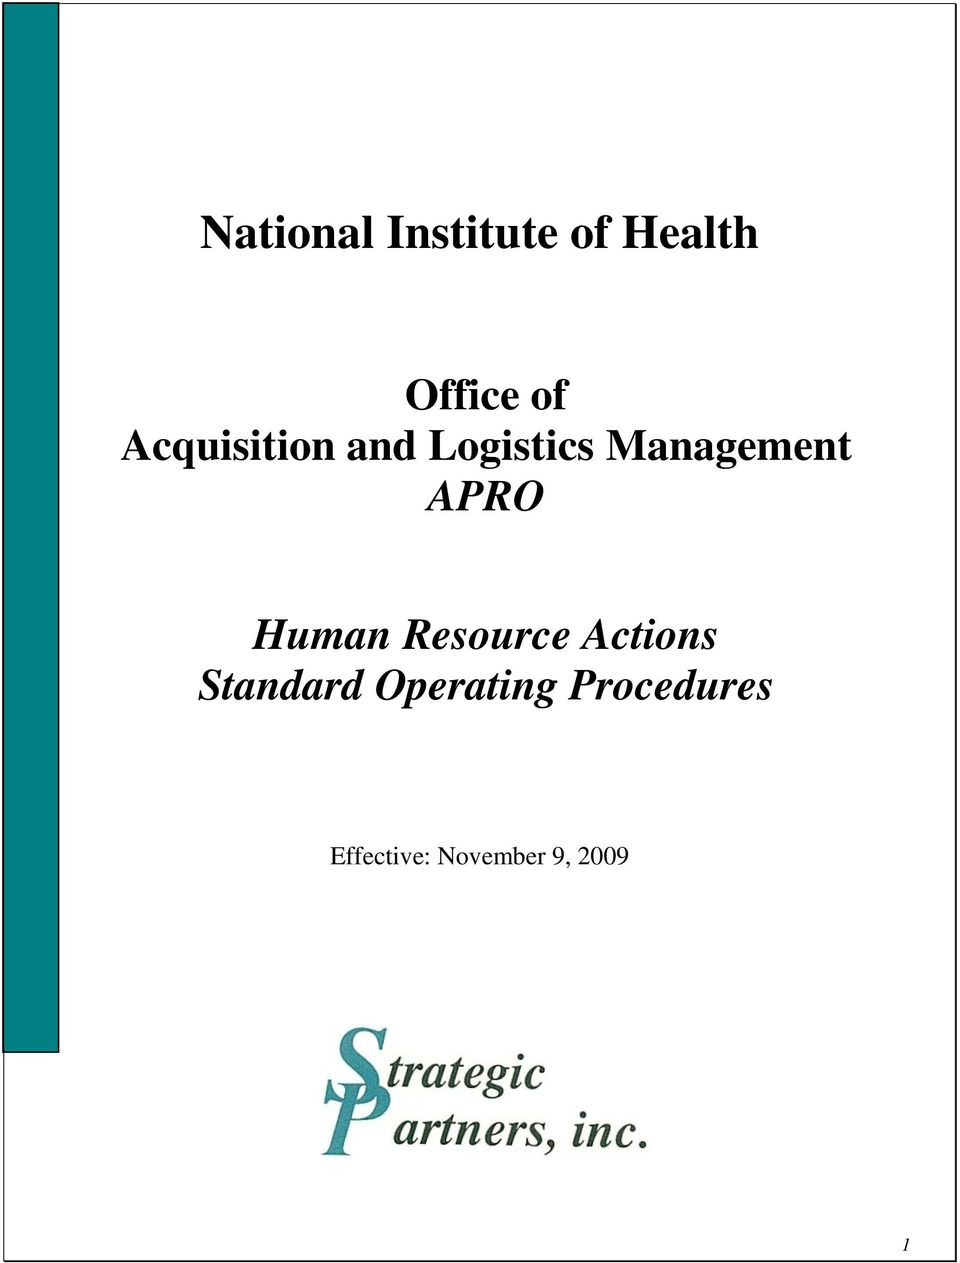 APRO Human Resource Actions Standard